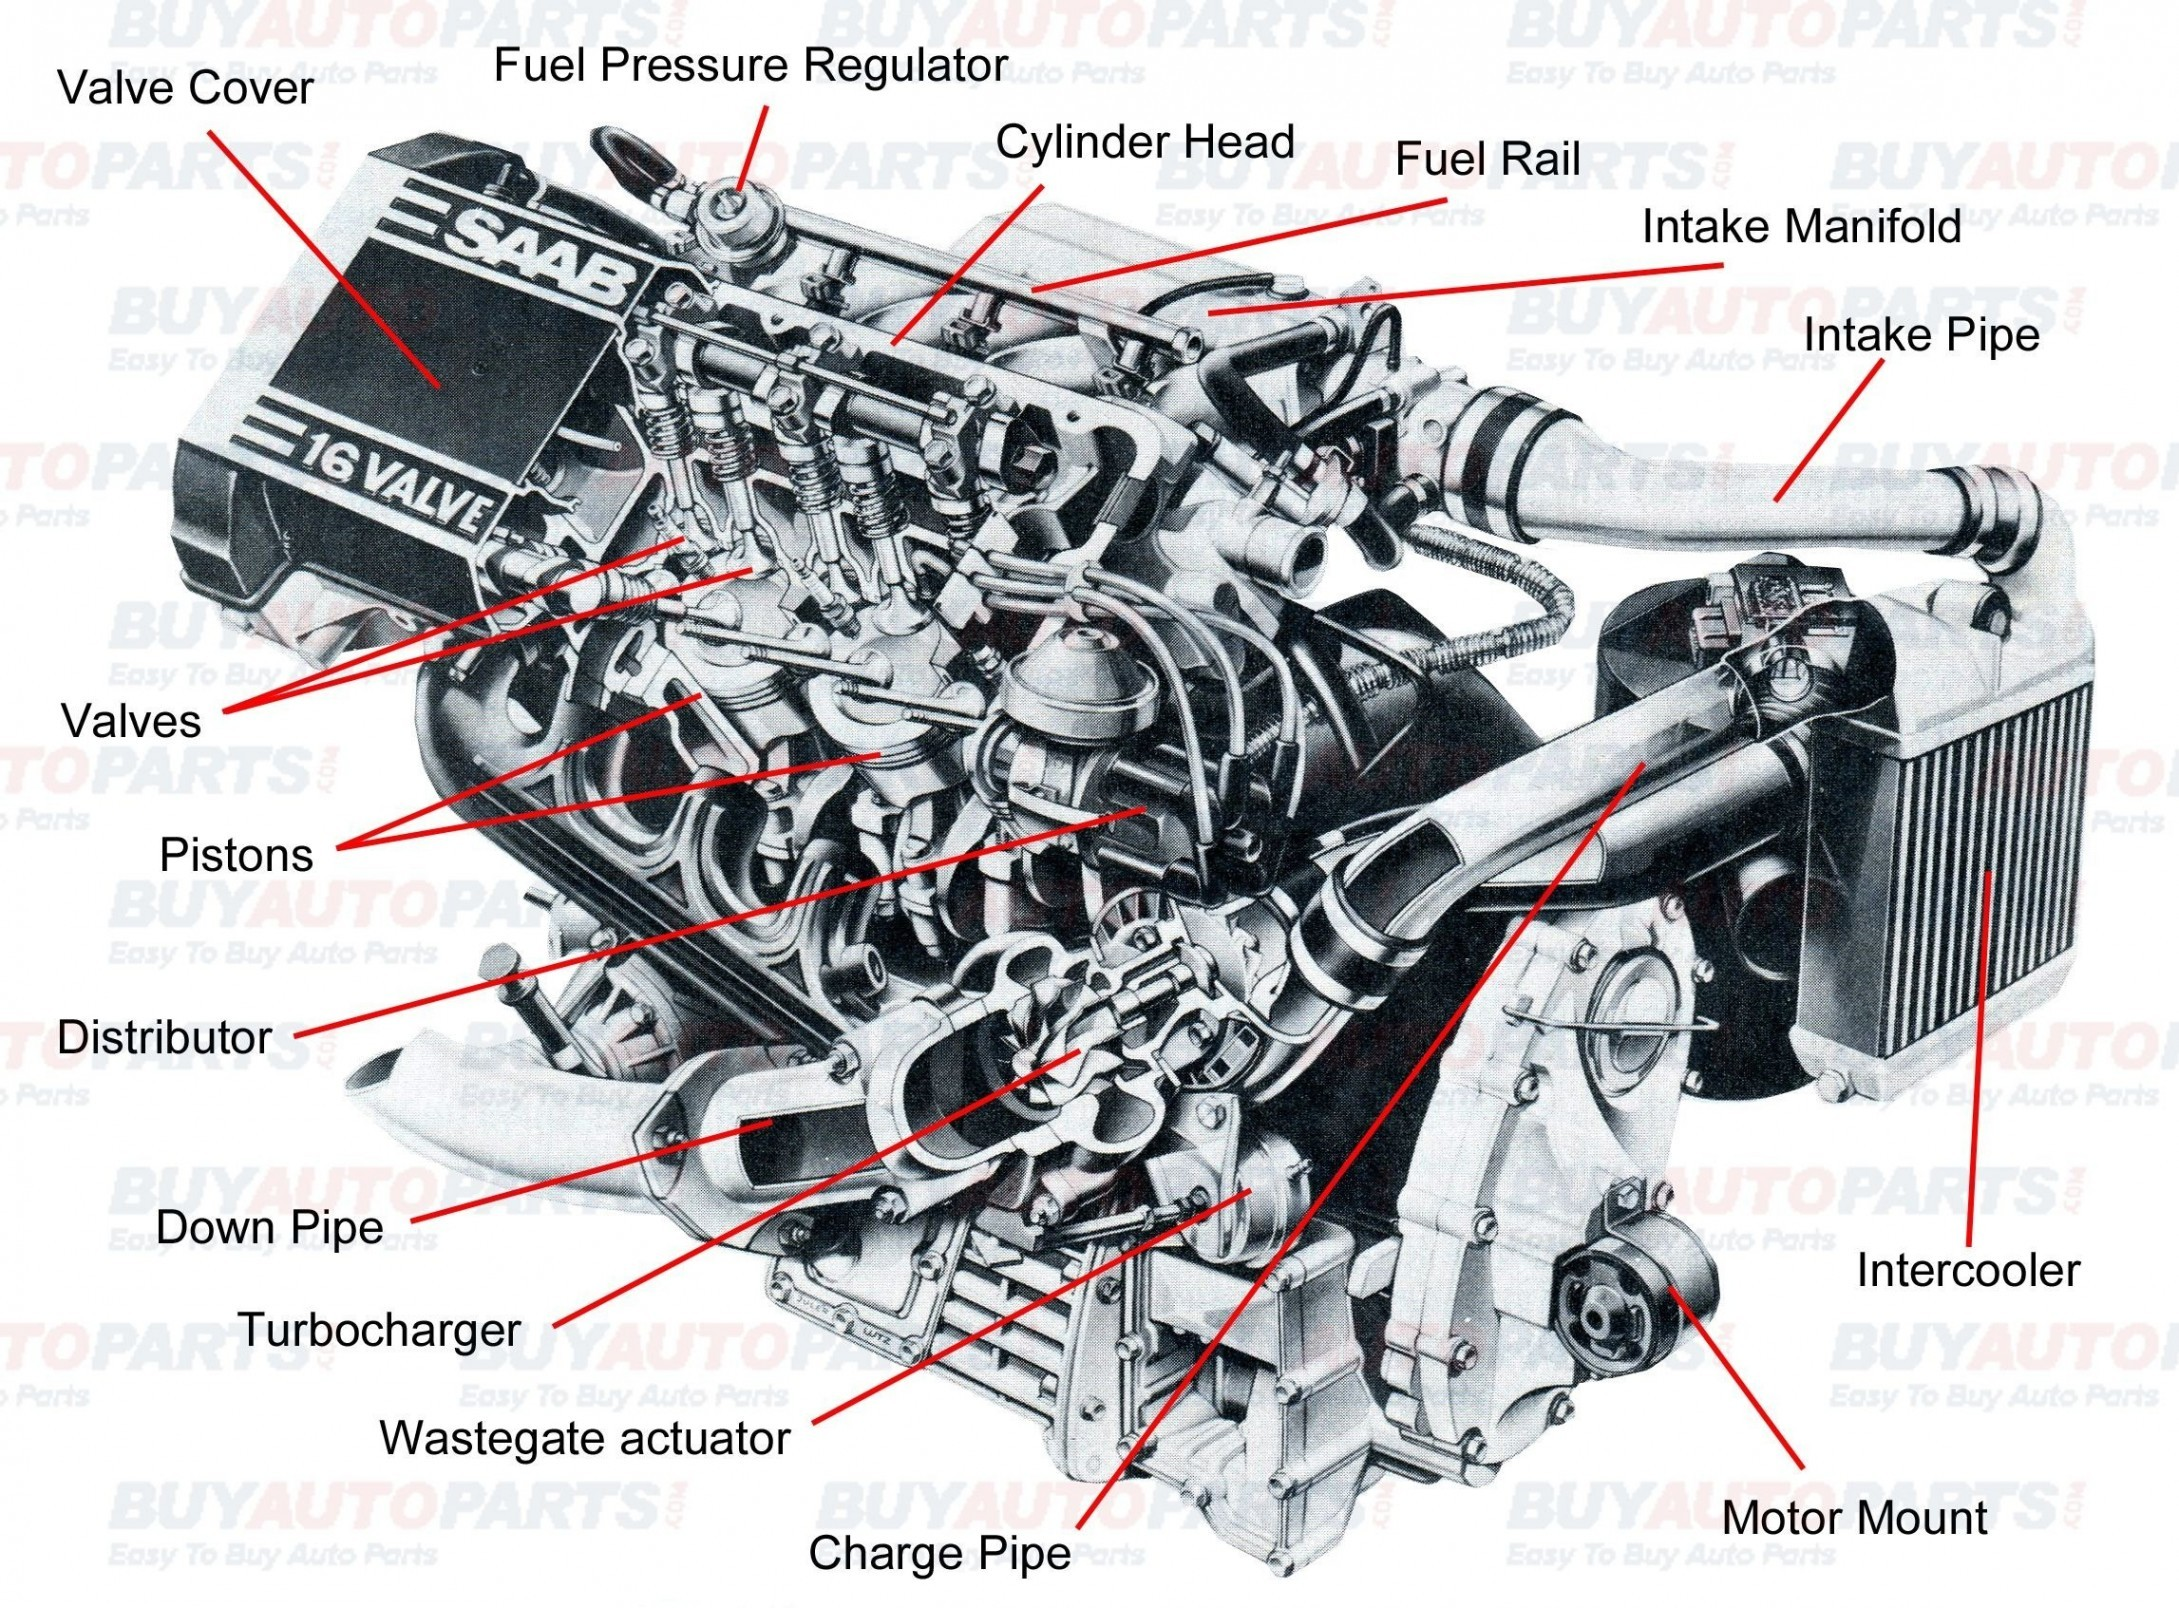 Auto Parts Diagram toyota Car Engine Diagram – Car Diagram Unique Car Parts and Diagrams Of Auto Parts Diagram toyota toyota Parts Diagram – Auto Parts Diagram Manual ] Saab Plug M16x1 5